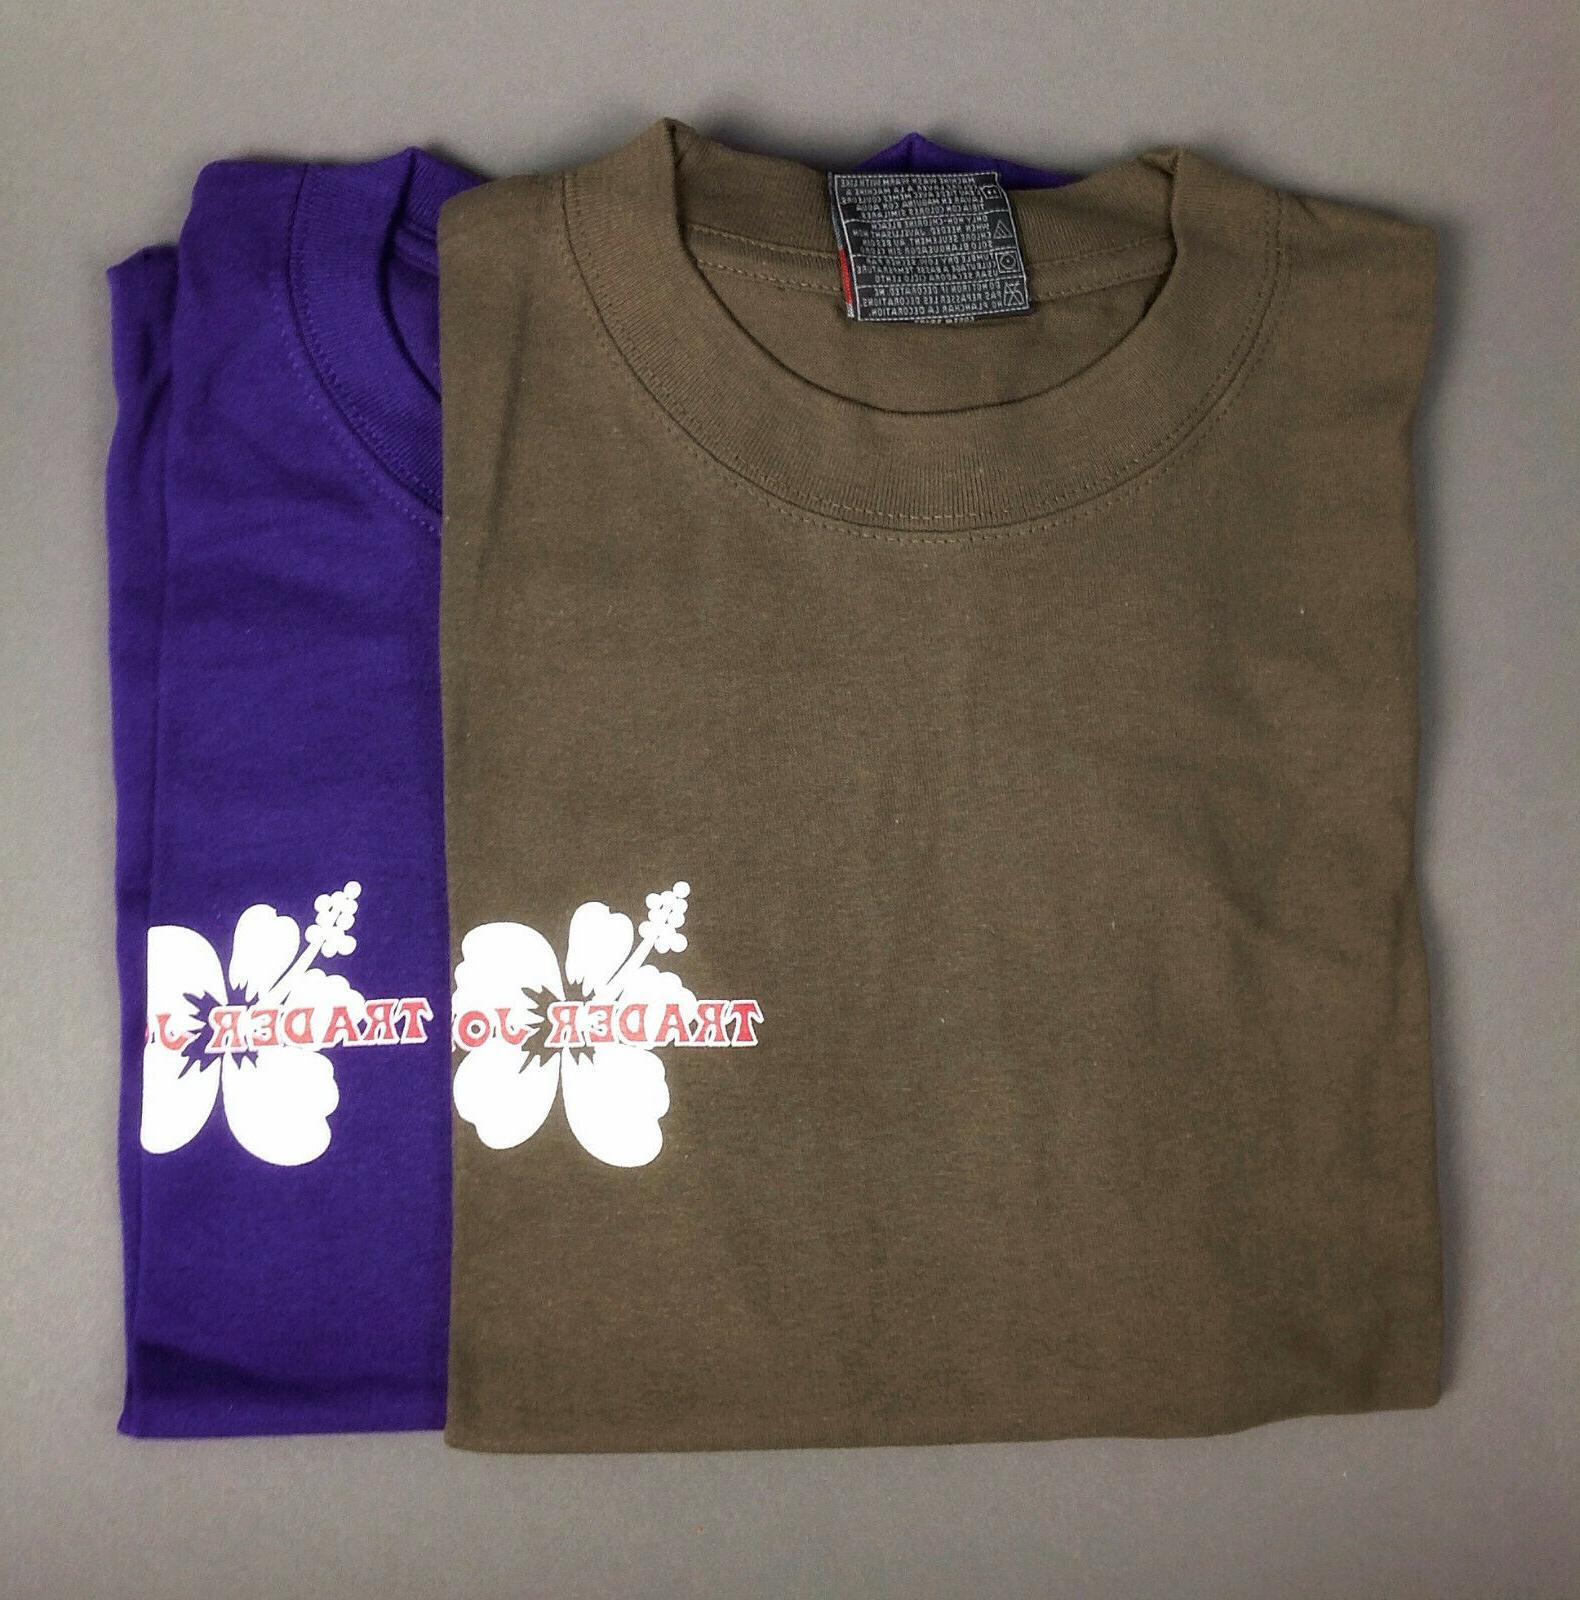 NEW Crew T-Shirts Colors MED + Employee Gear!